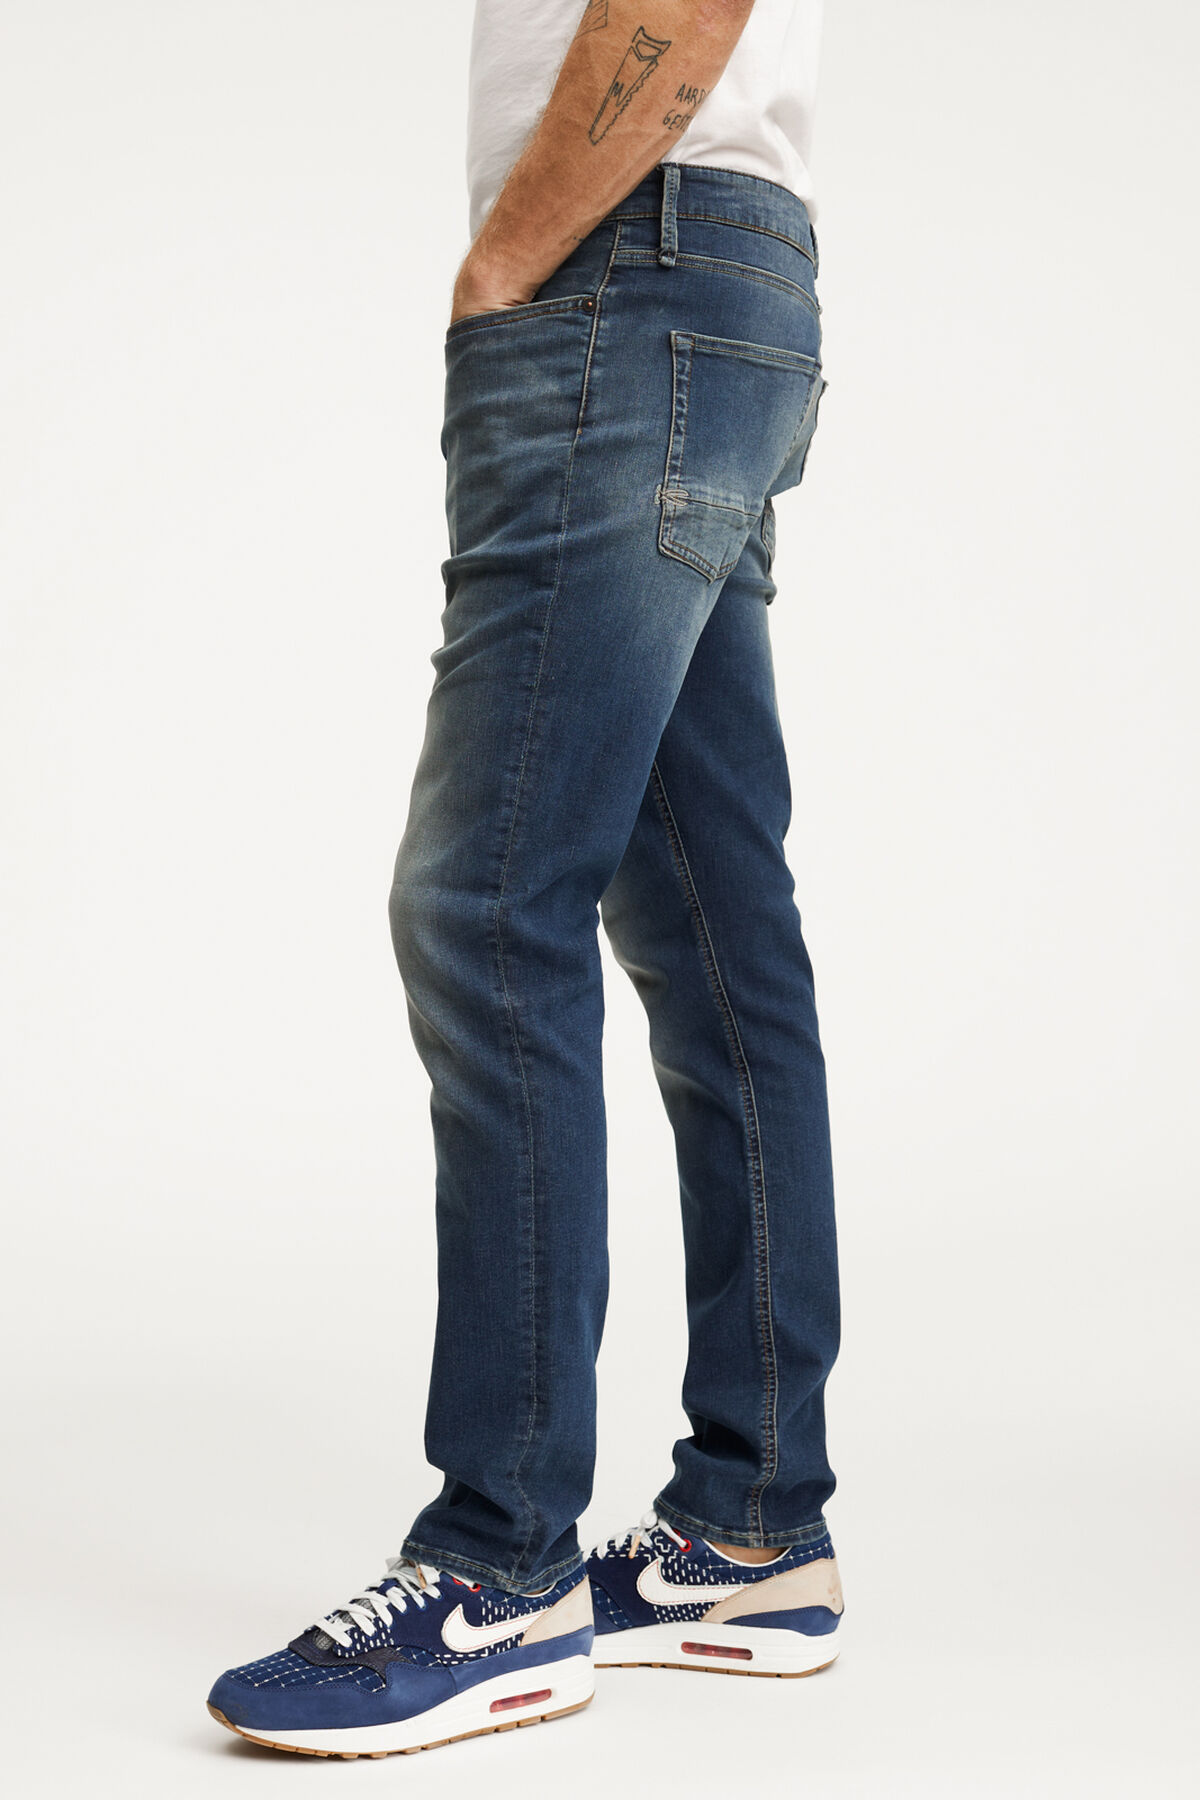 RAZOR Classic Indigo Denim - Slim Fit